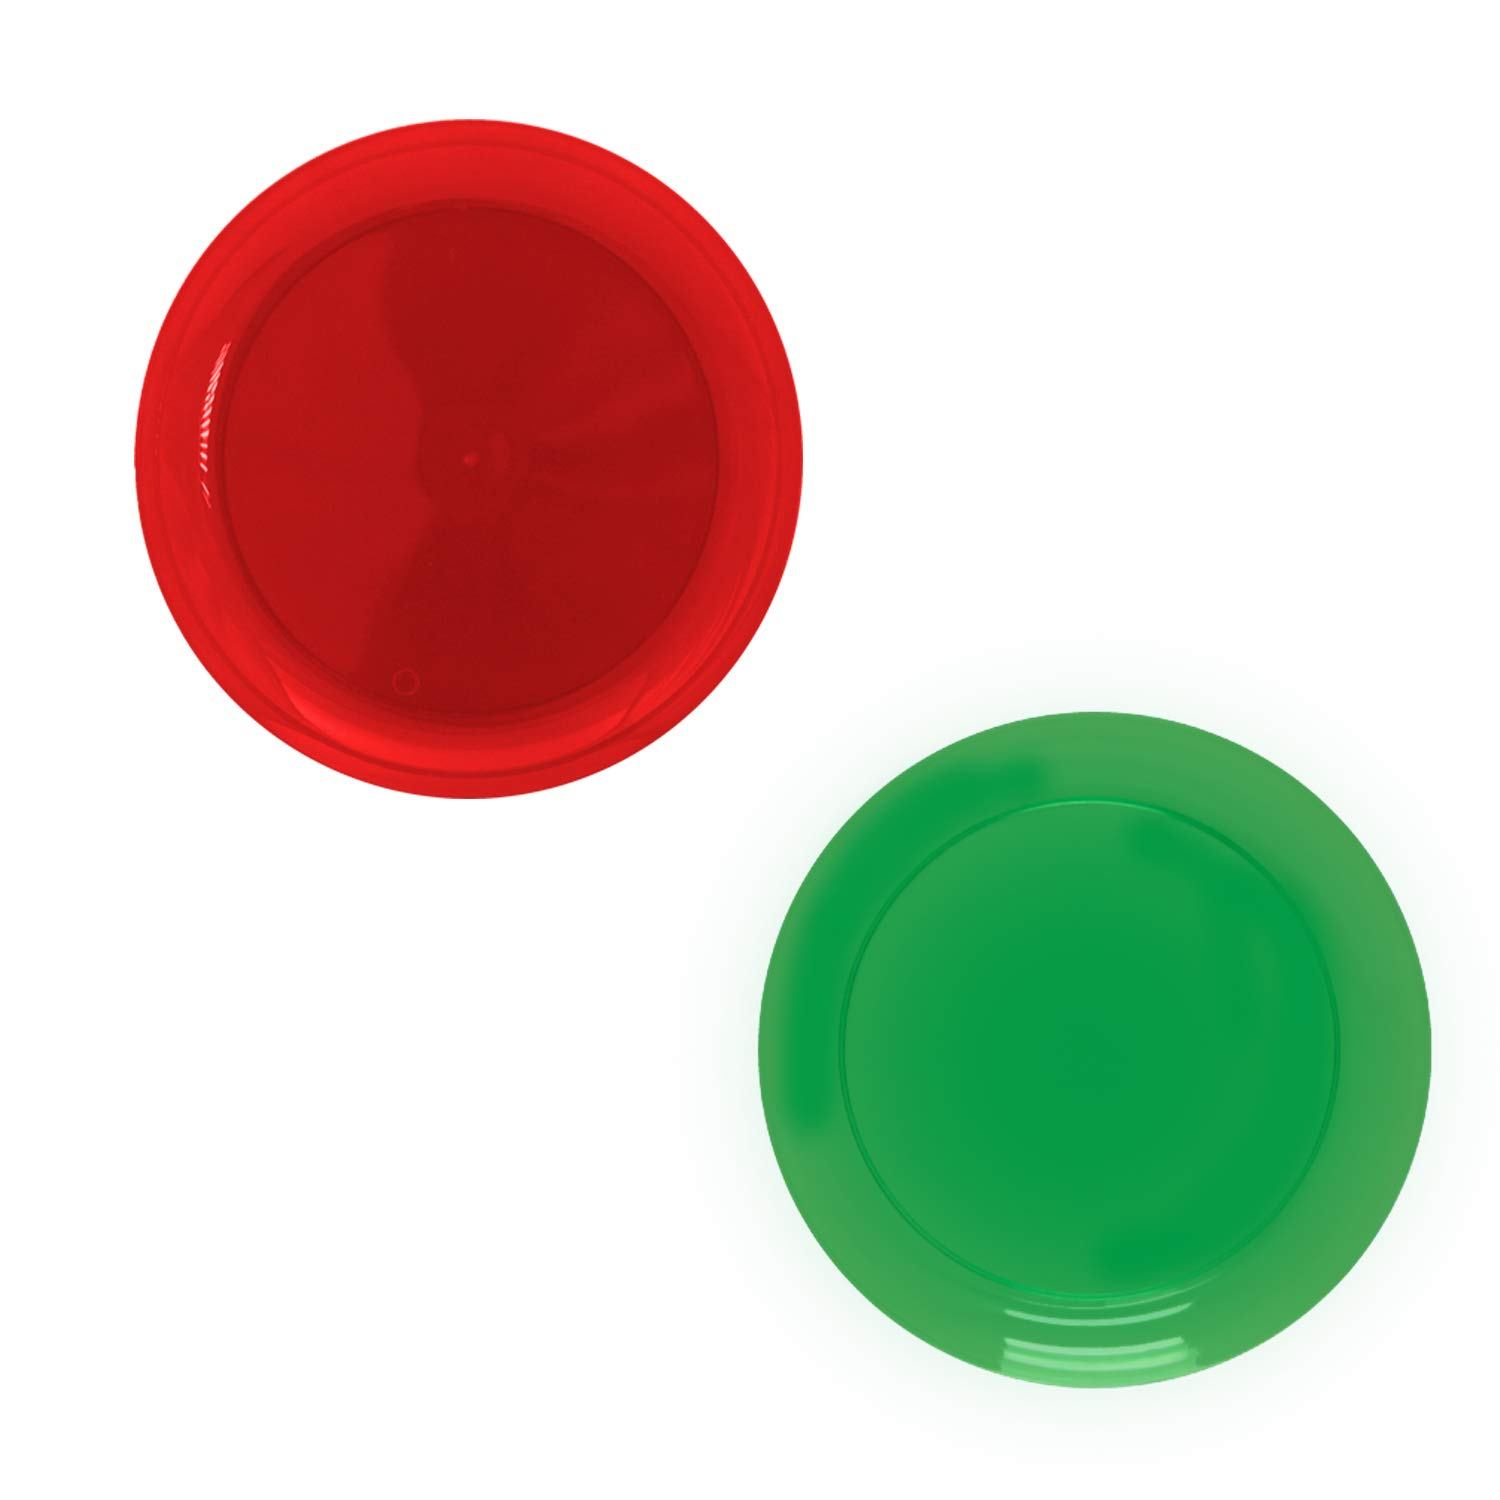 Party Essentials SD1224 Hard Plastic Red & Green Trays, Plastic, Red/Green (Pack of 36)